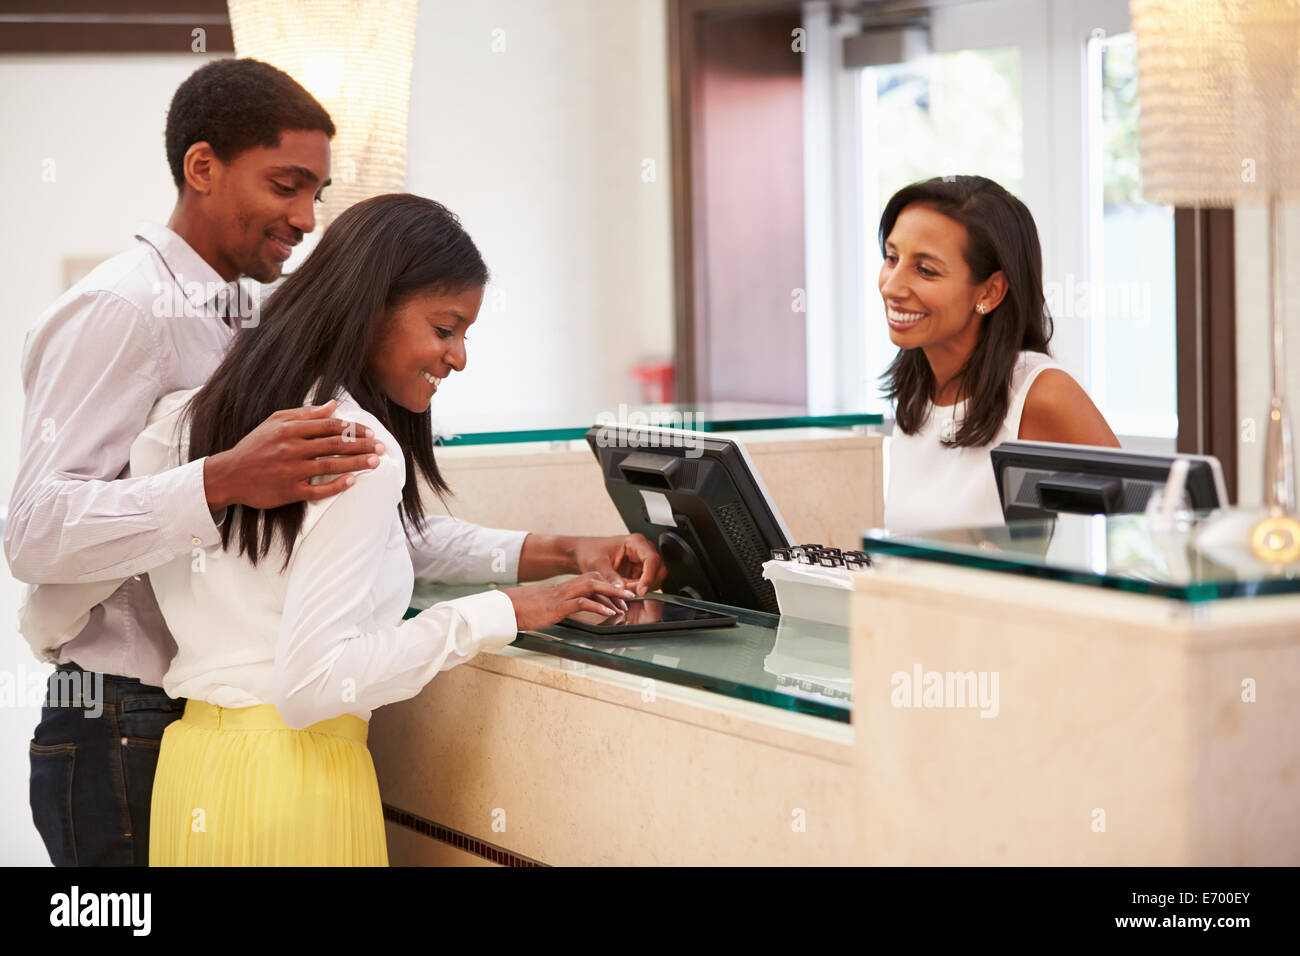 Couple Checking In At Hotel Reception Using Digital Tablet - Stock Image